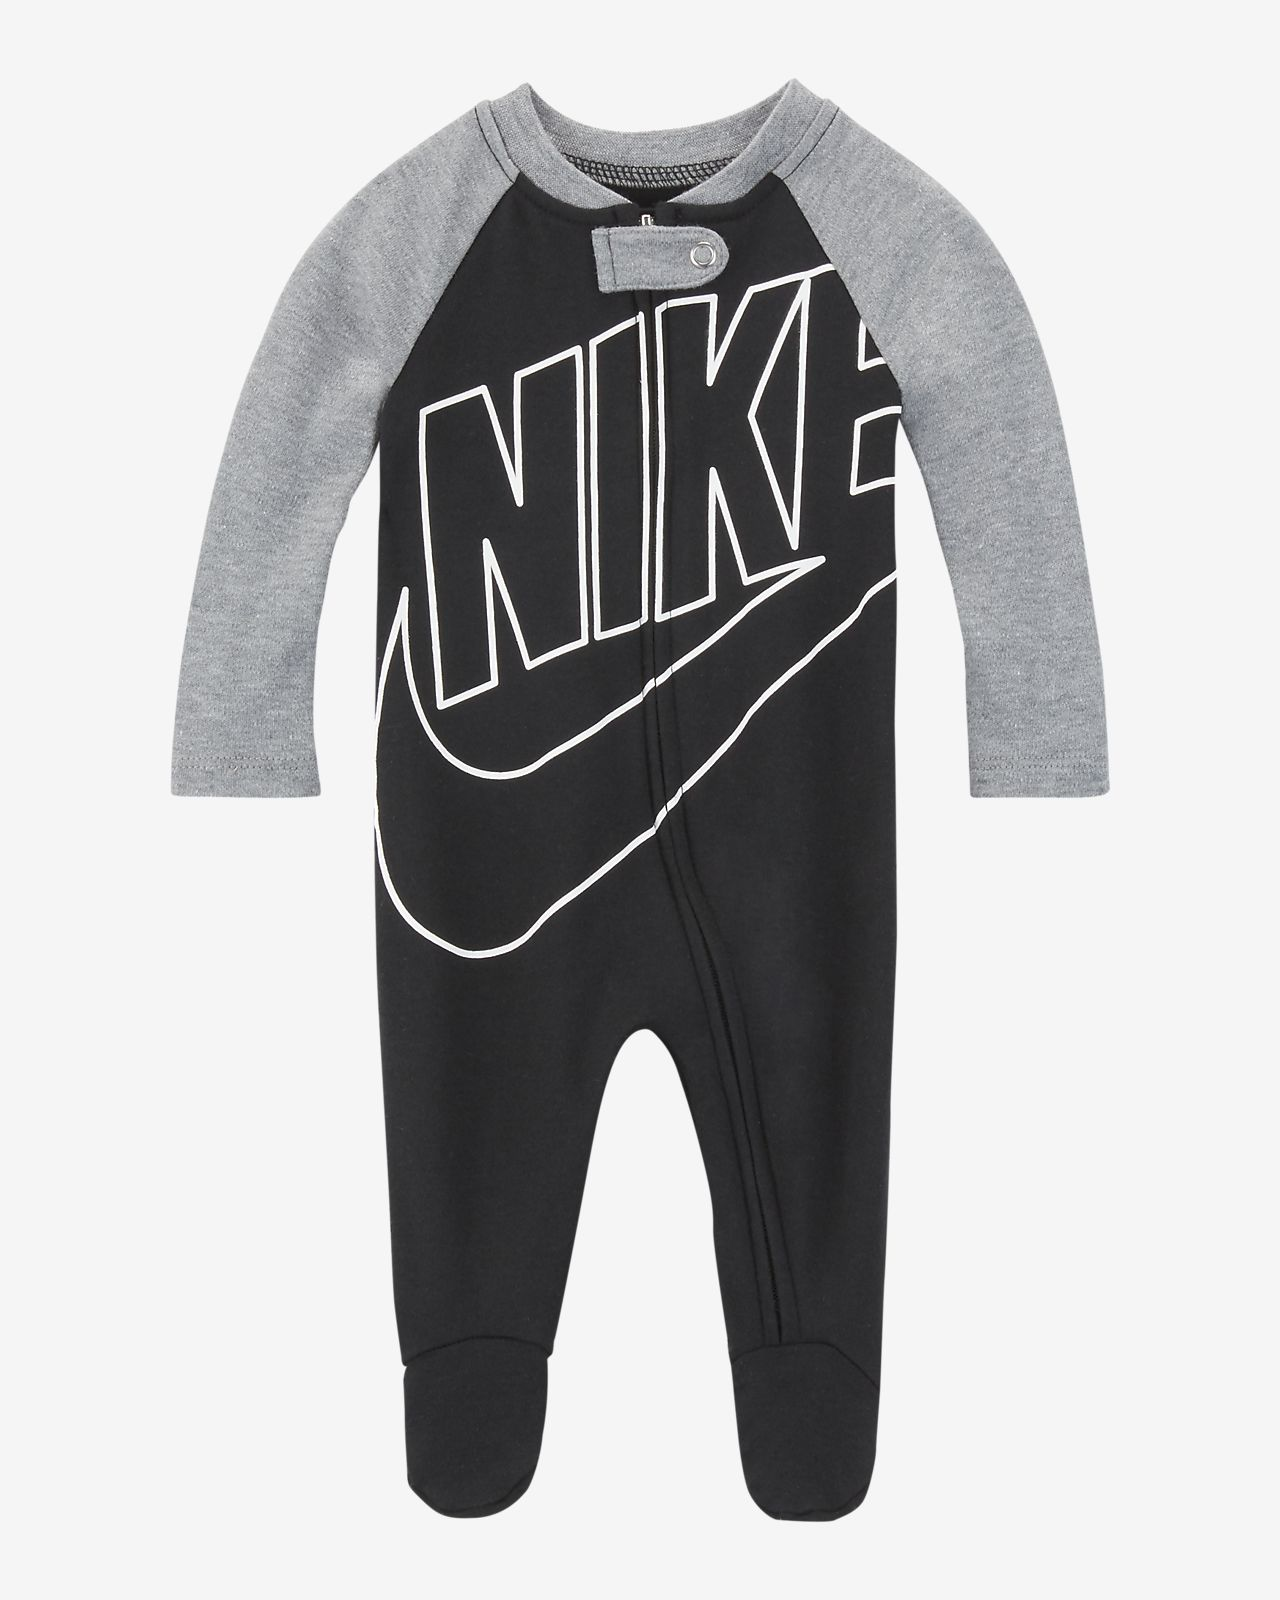 1596c7efe1c7 Nike Infant Footed Coverall. Nike.com